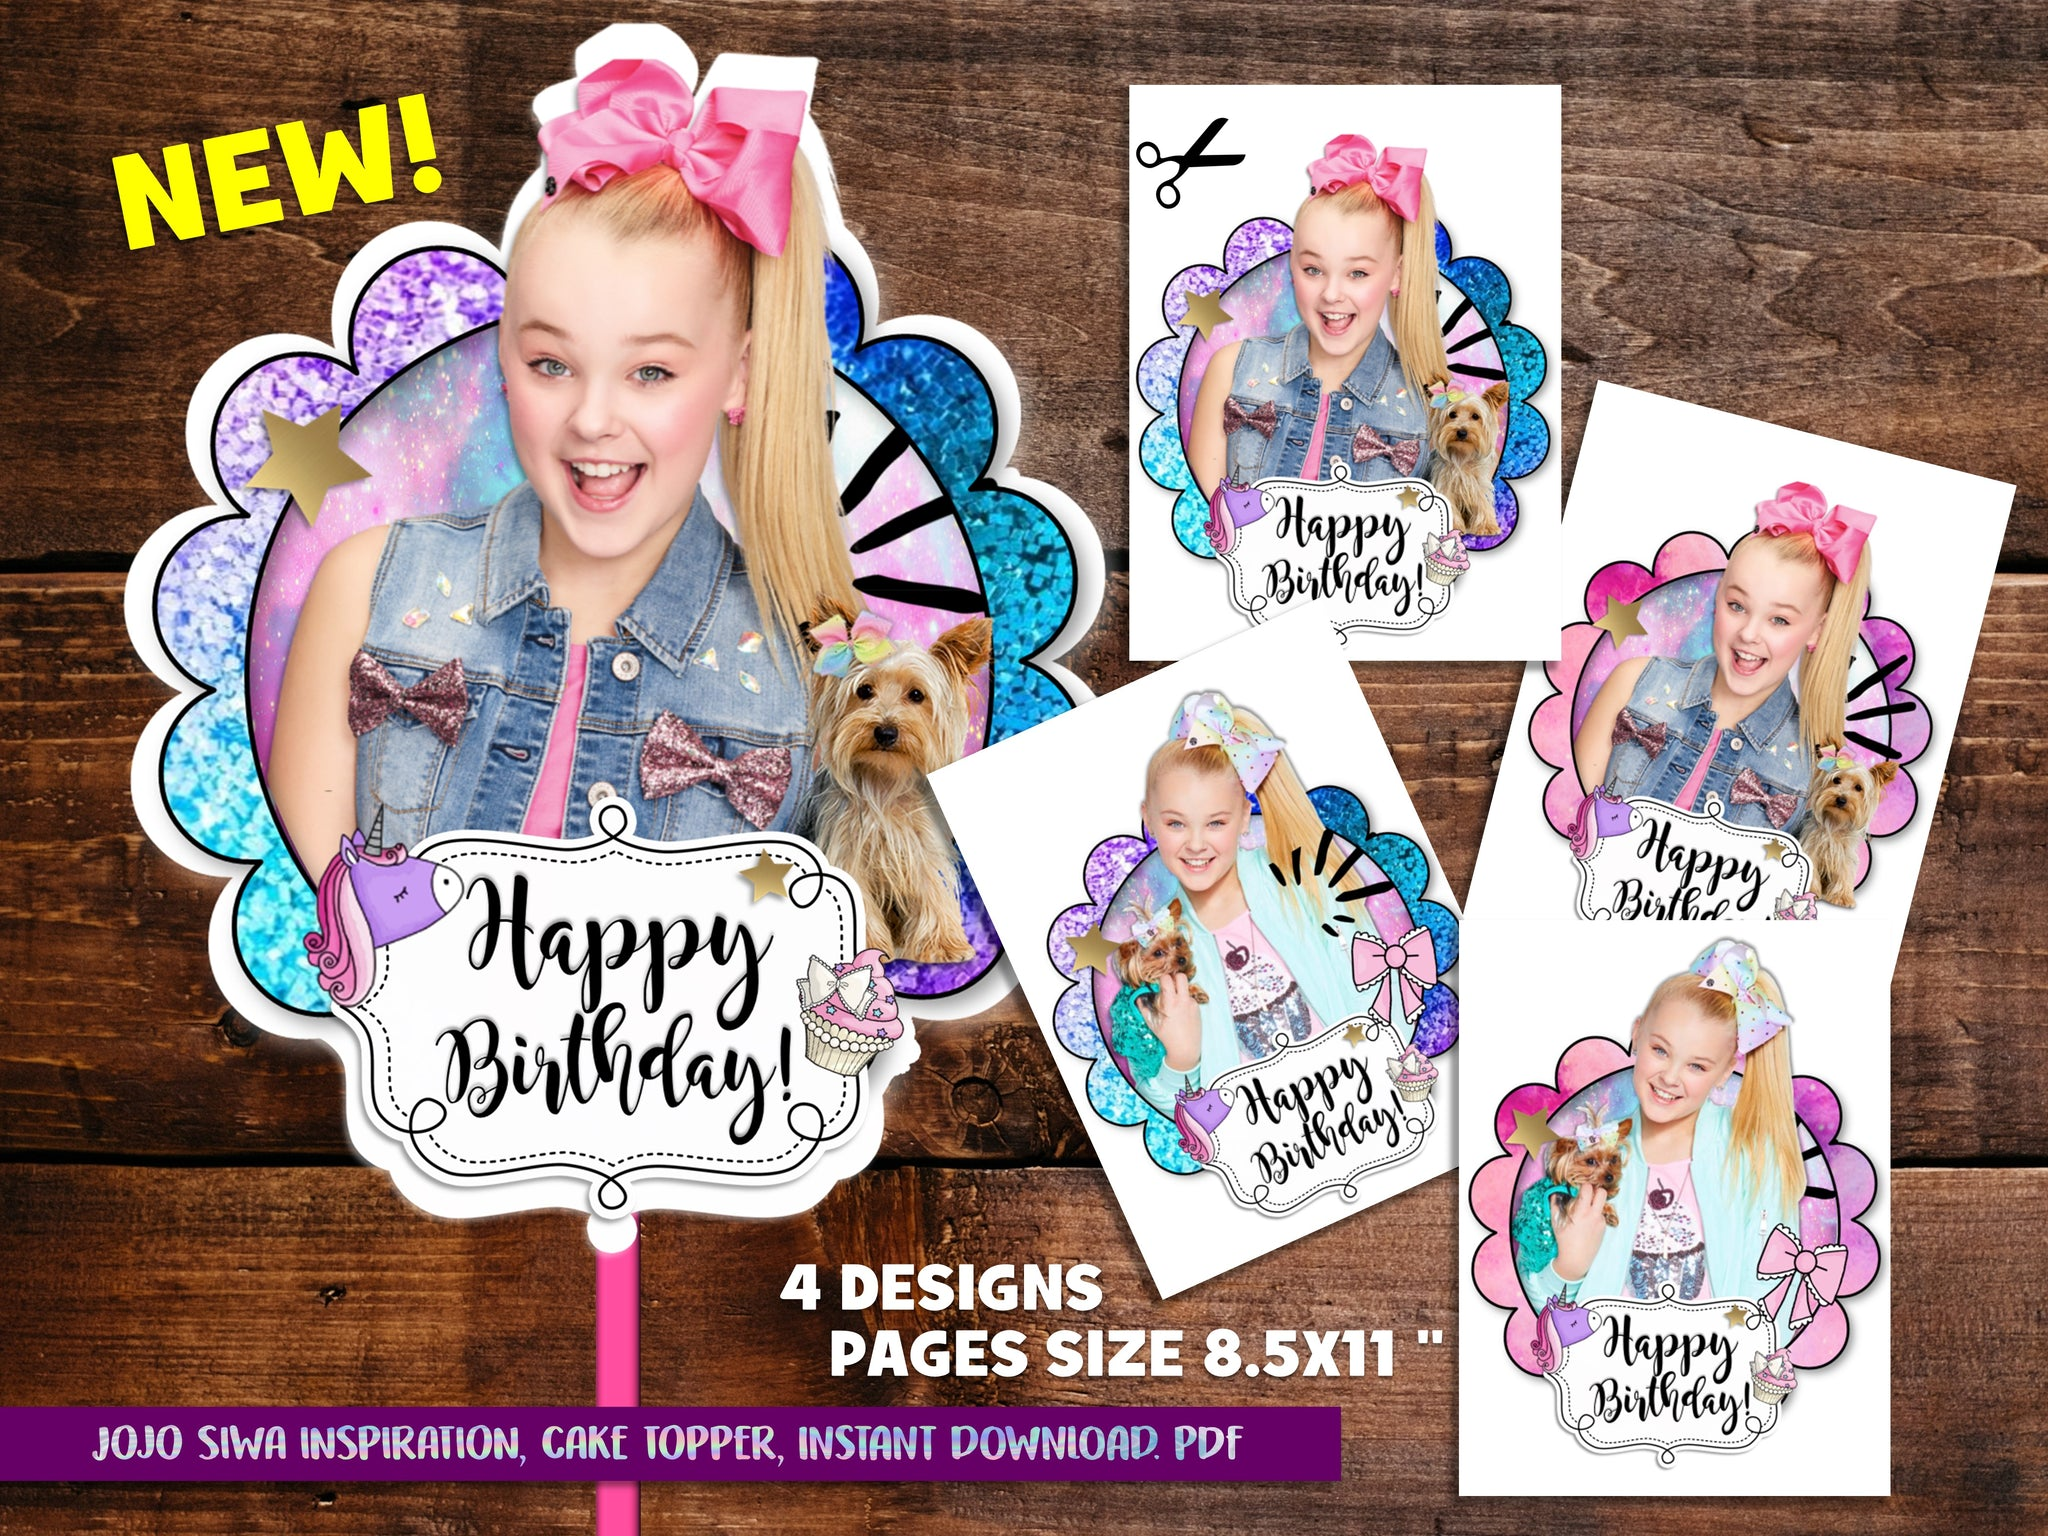 JOJO SIWA CUPCAKE TOPPERS - OH MY PARTY STUDIO